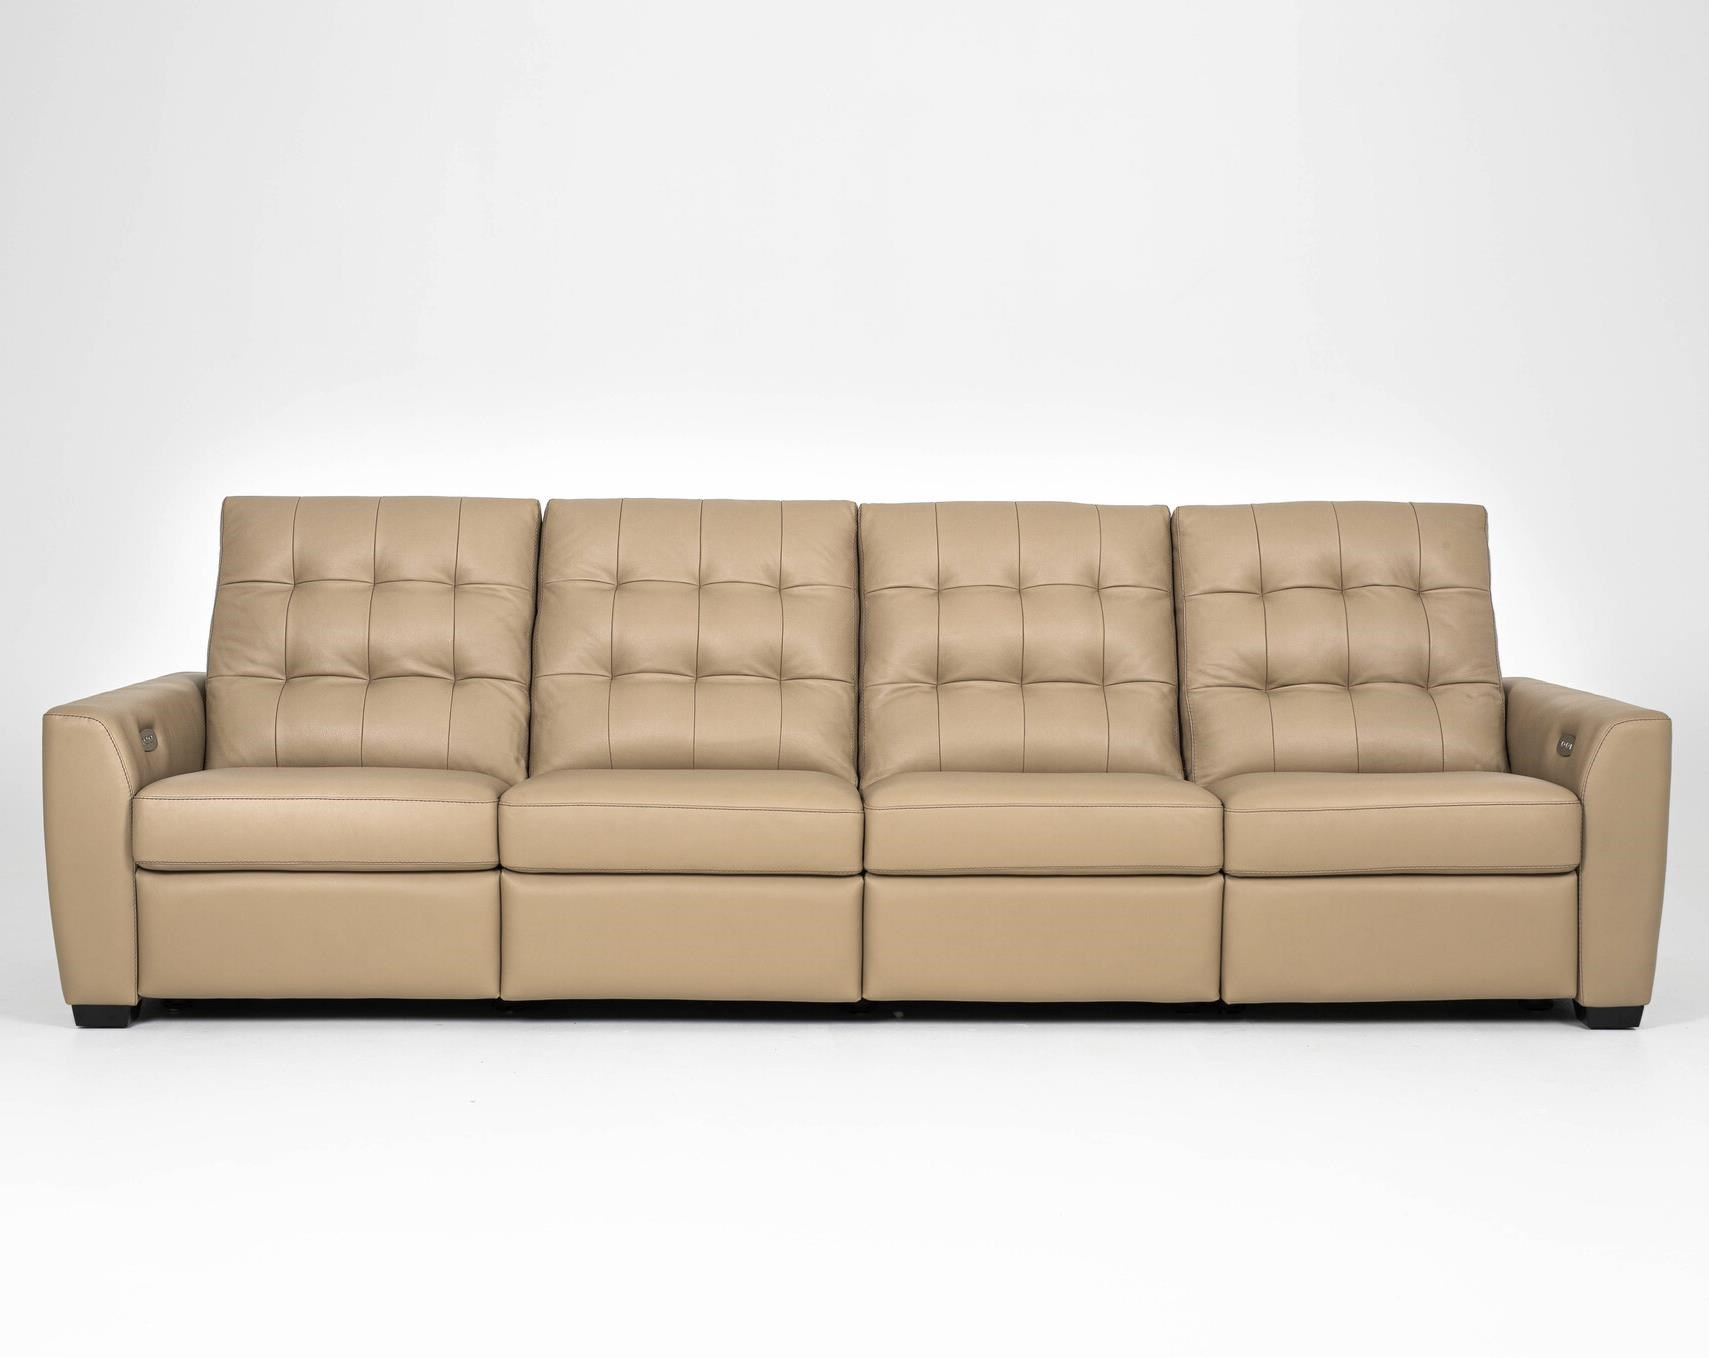 Napa Reclining 4-Seat Sofa by American Leather at Williams & Kay